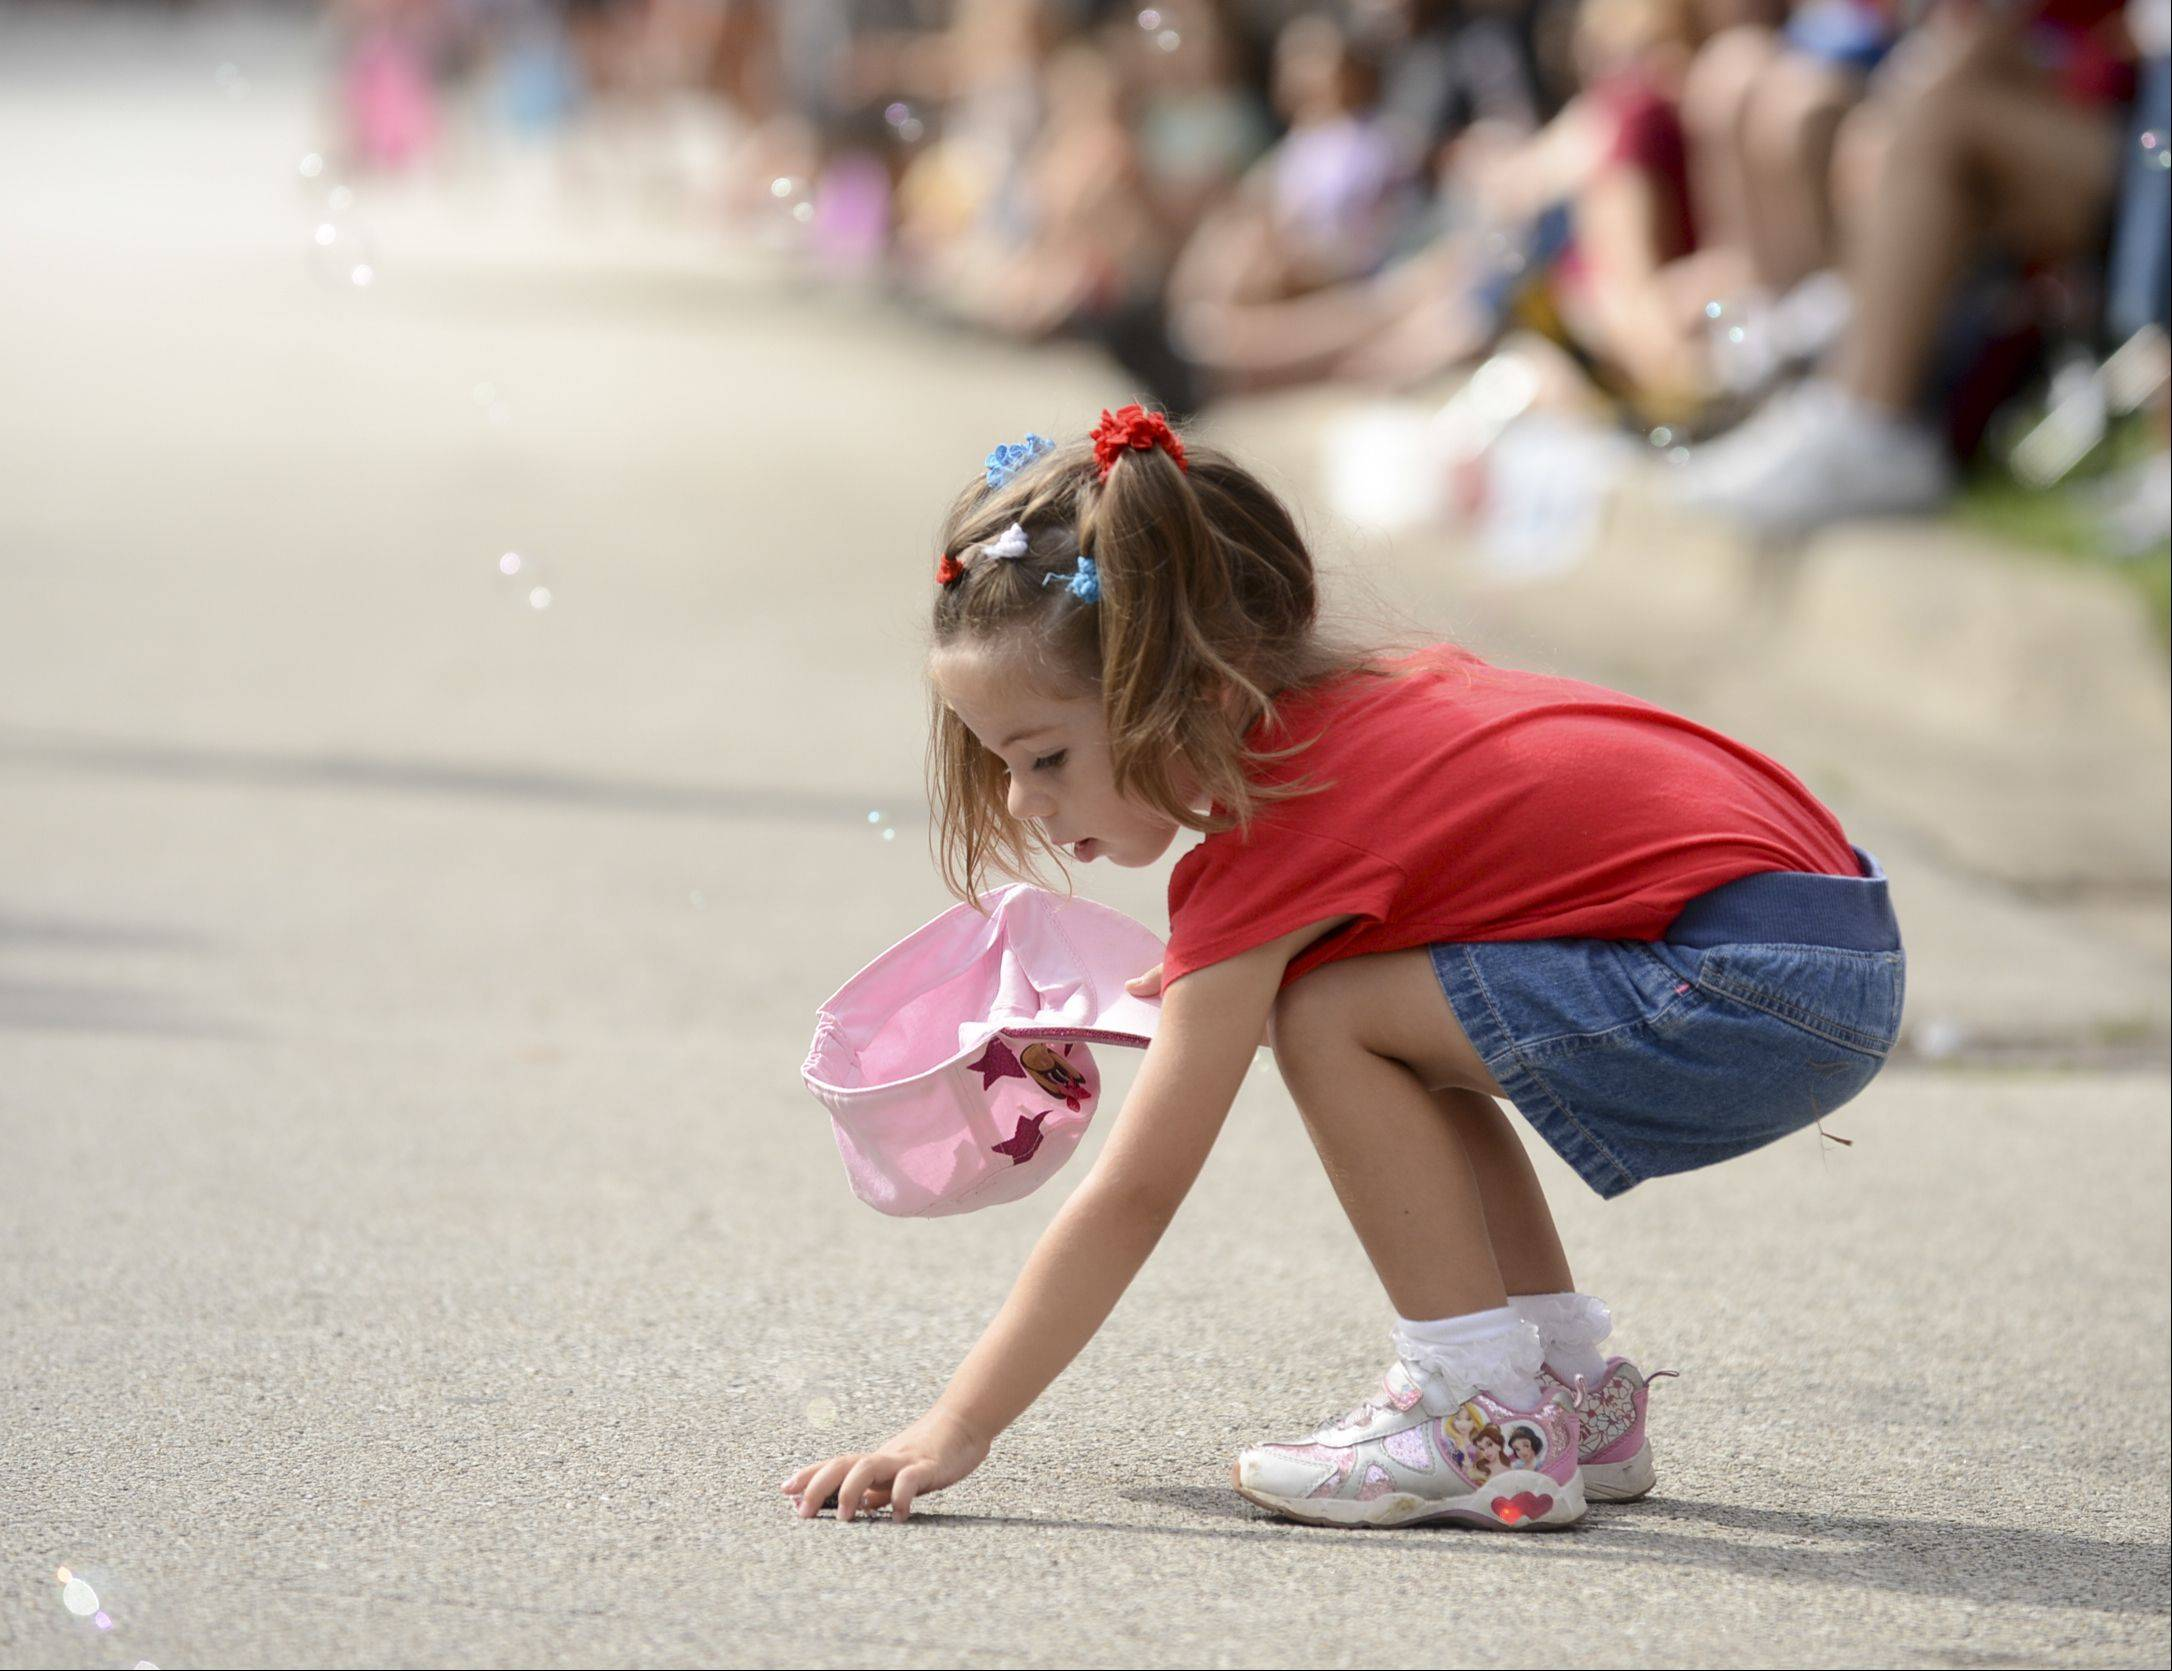 Cherish Kramer, 3 of Glen Ellyn scoops up candy during the Naperville Labor Day parade Monday that is part of the Jaycees' Last Fling.